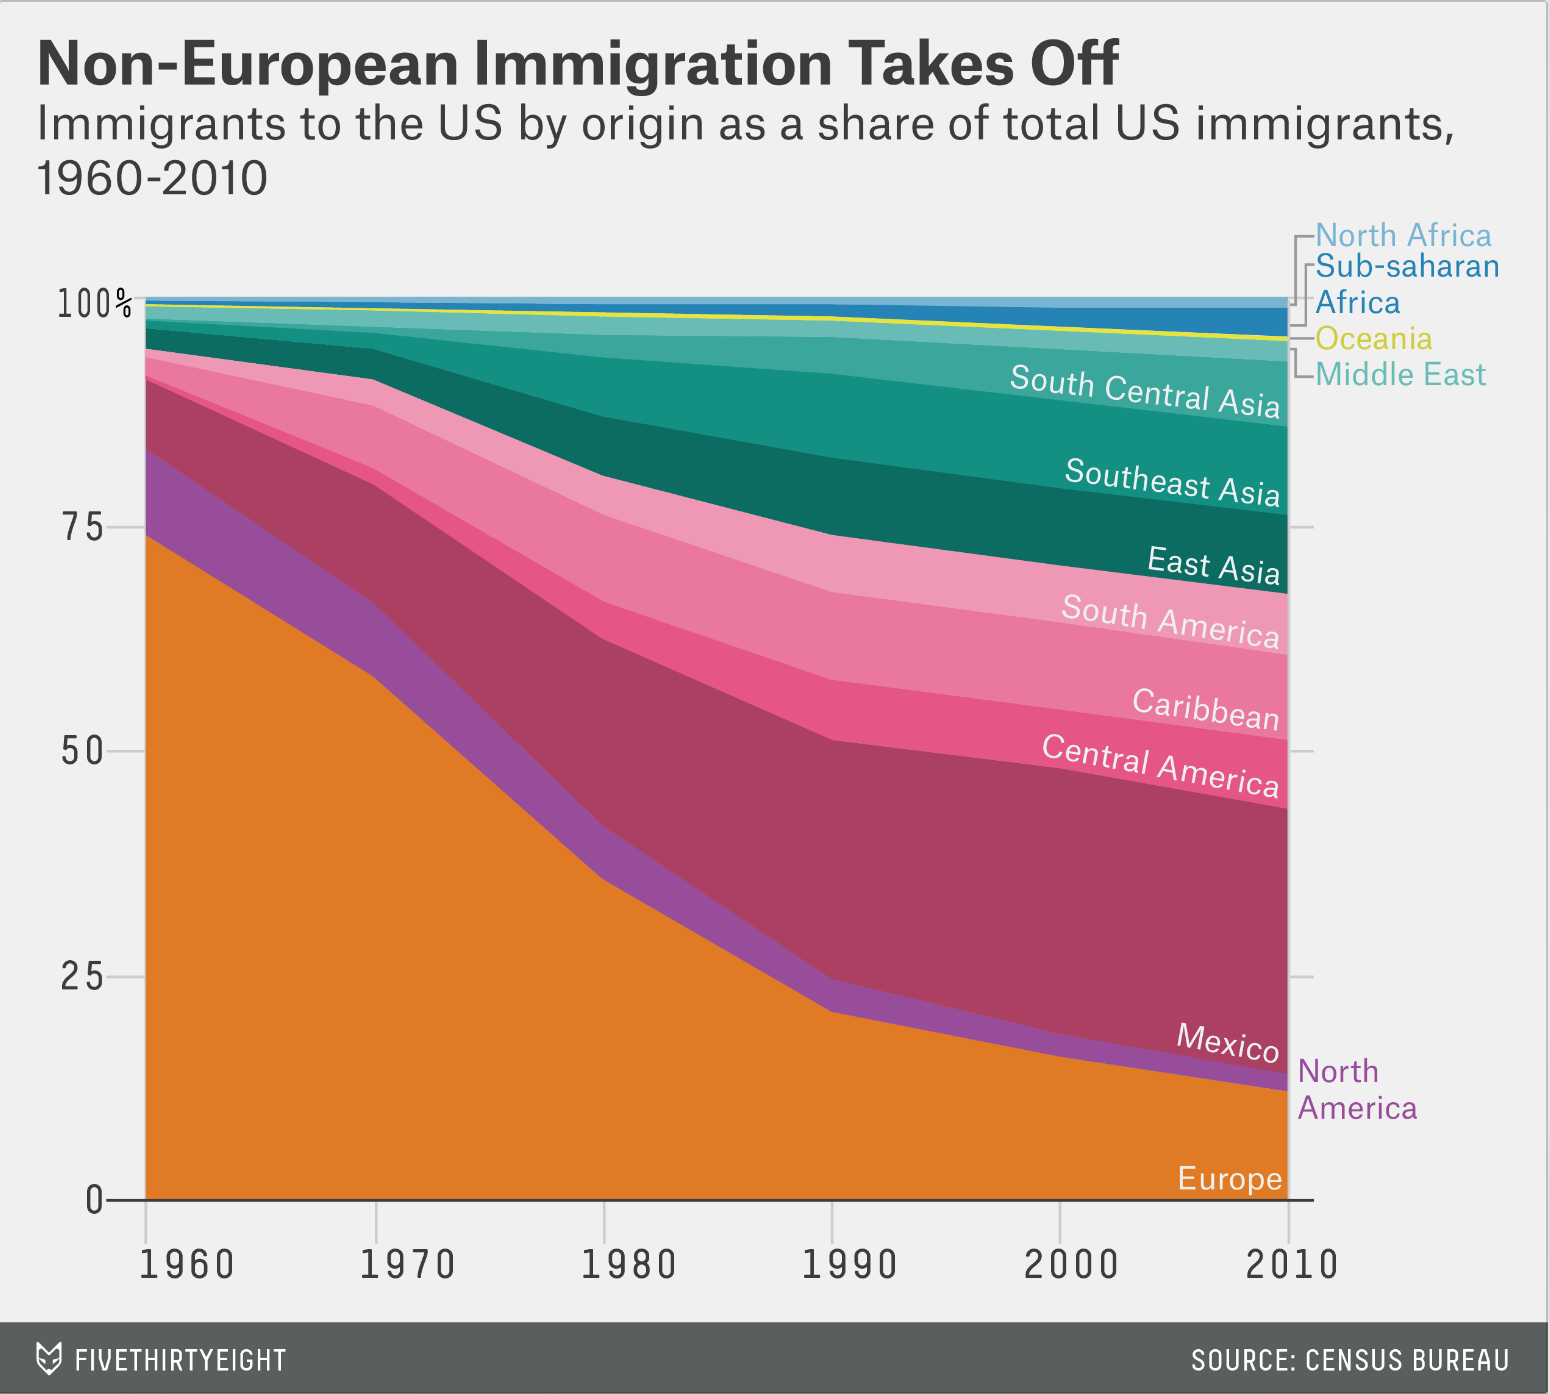 Immigration to the US has become steadily less European